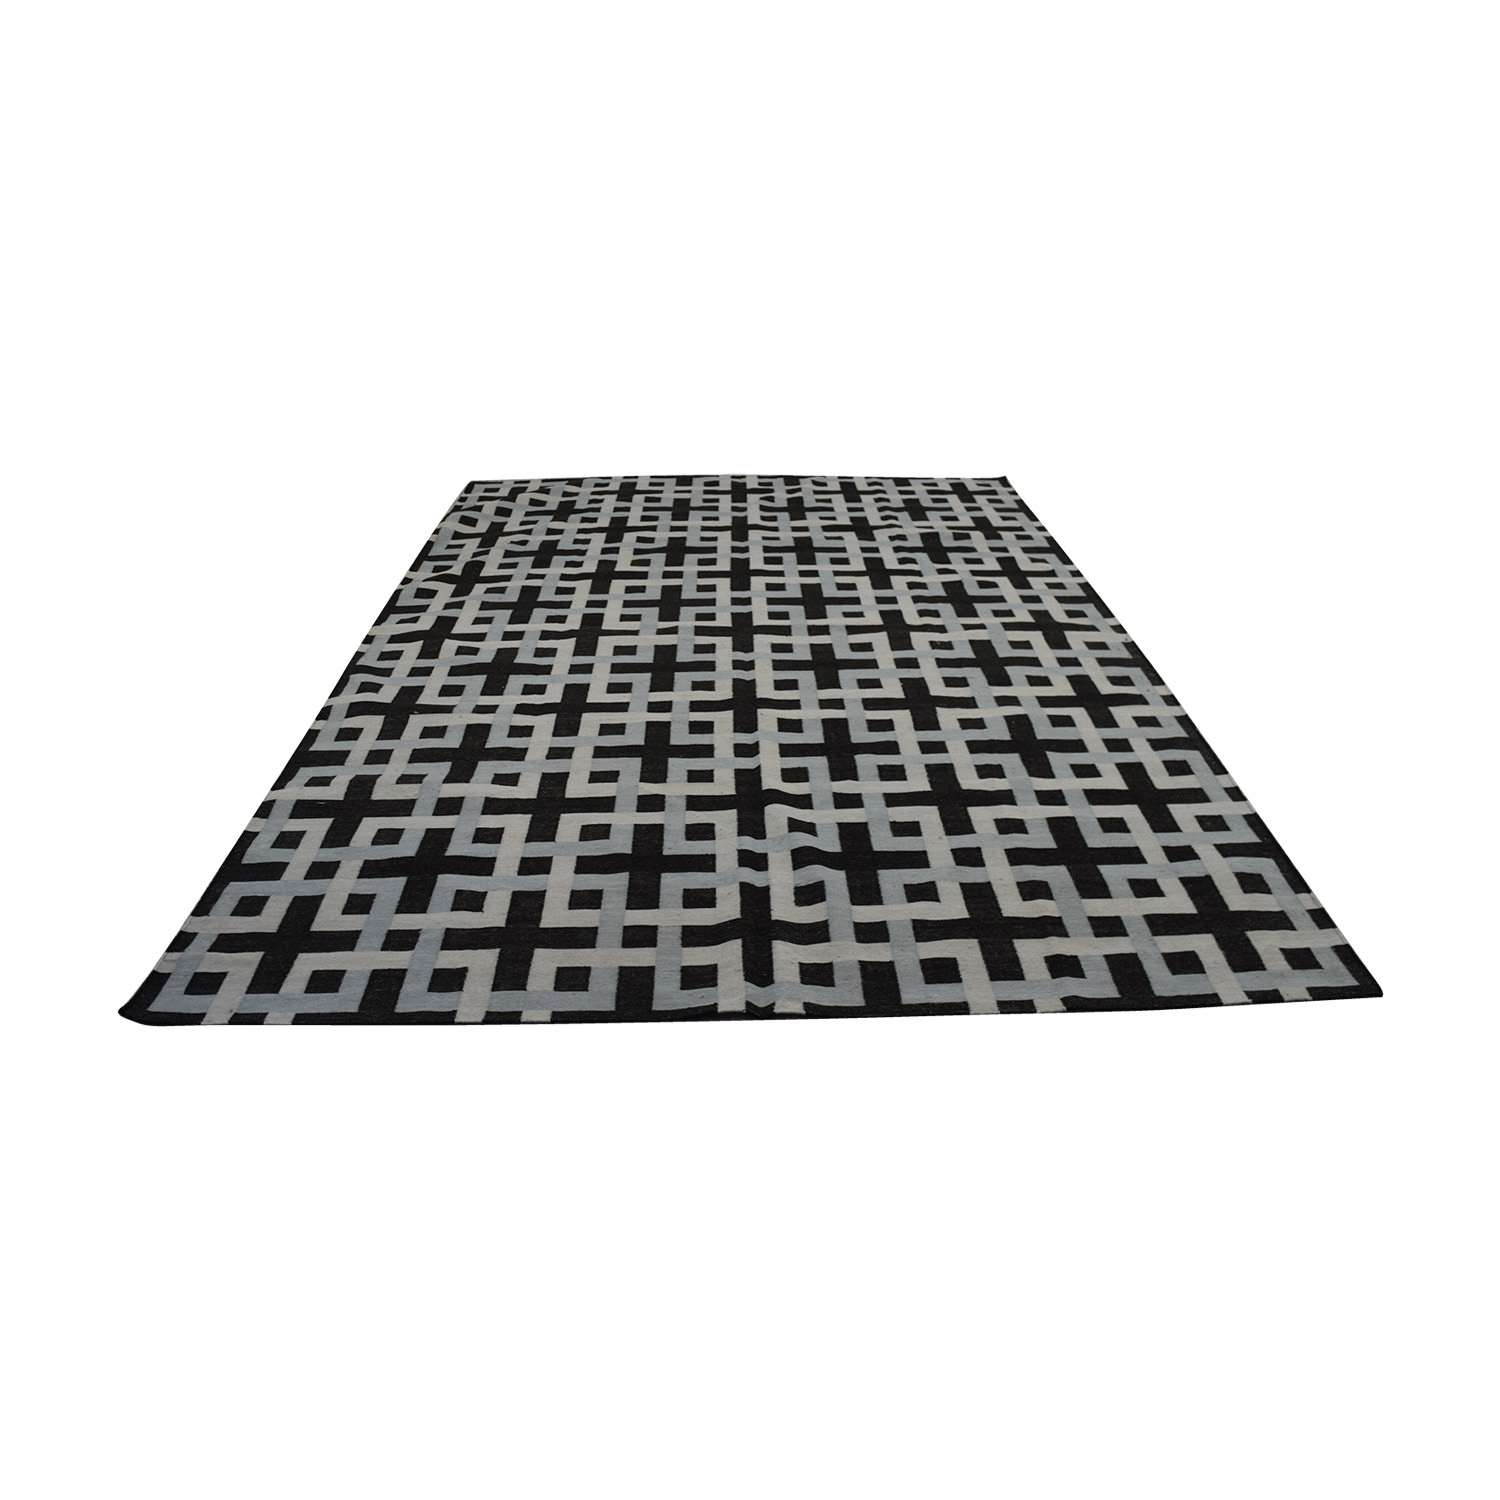 Obeetee Obeetee Square Geometric Weave Rug on sale